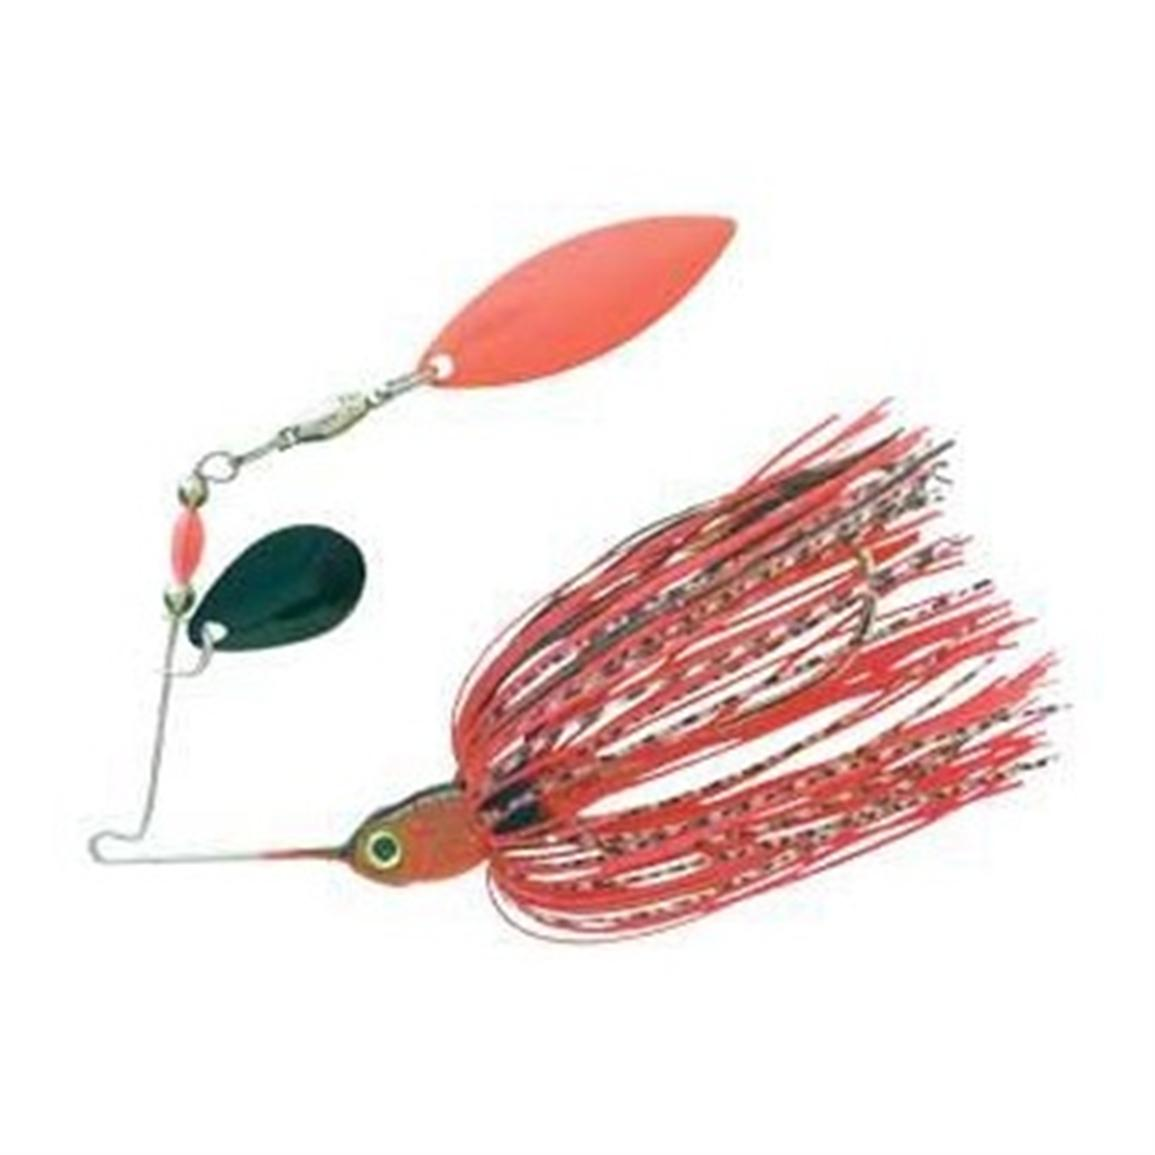 booyah pond magic lure shad 200978 spinnerbaits at